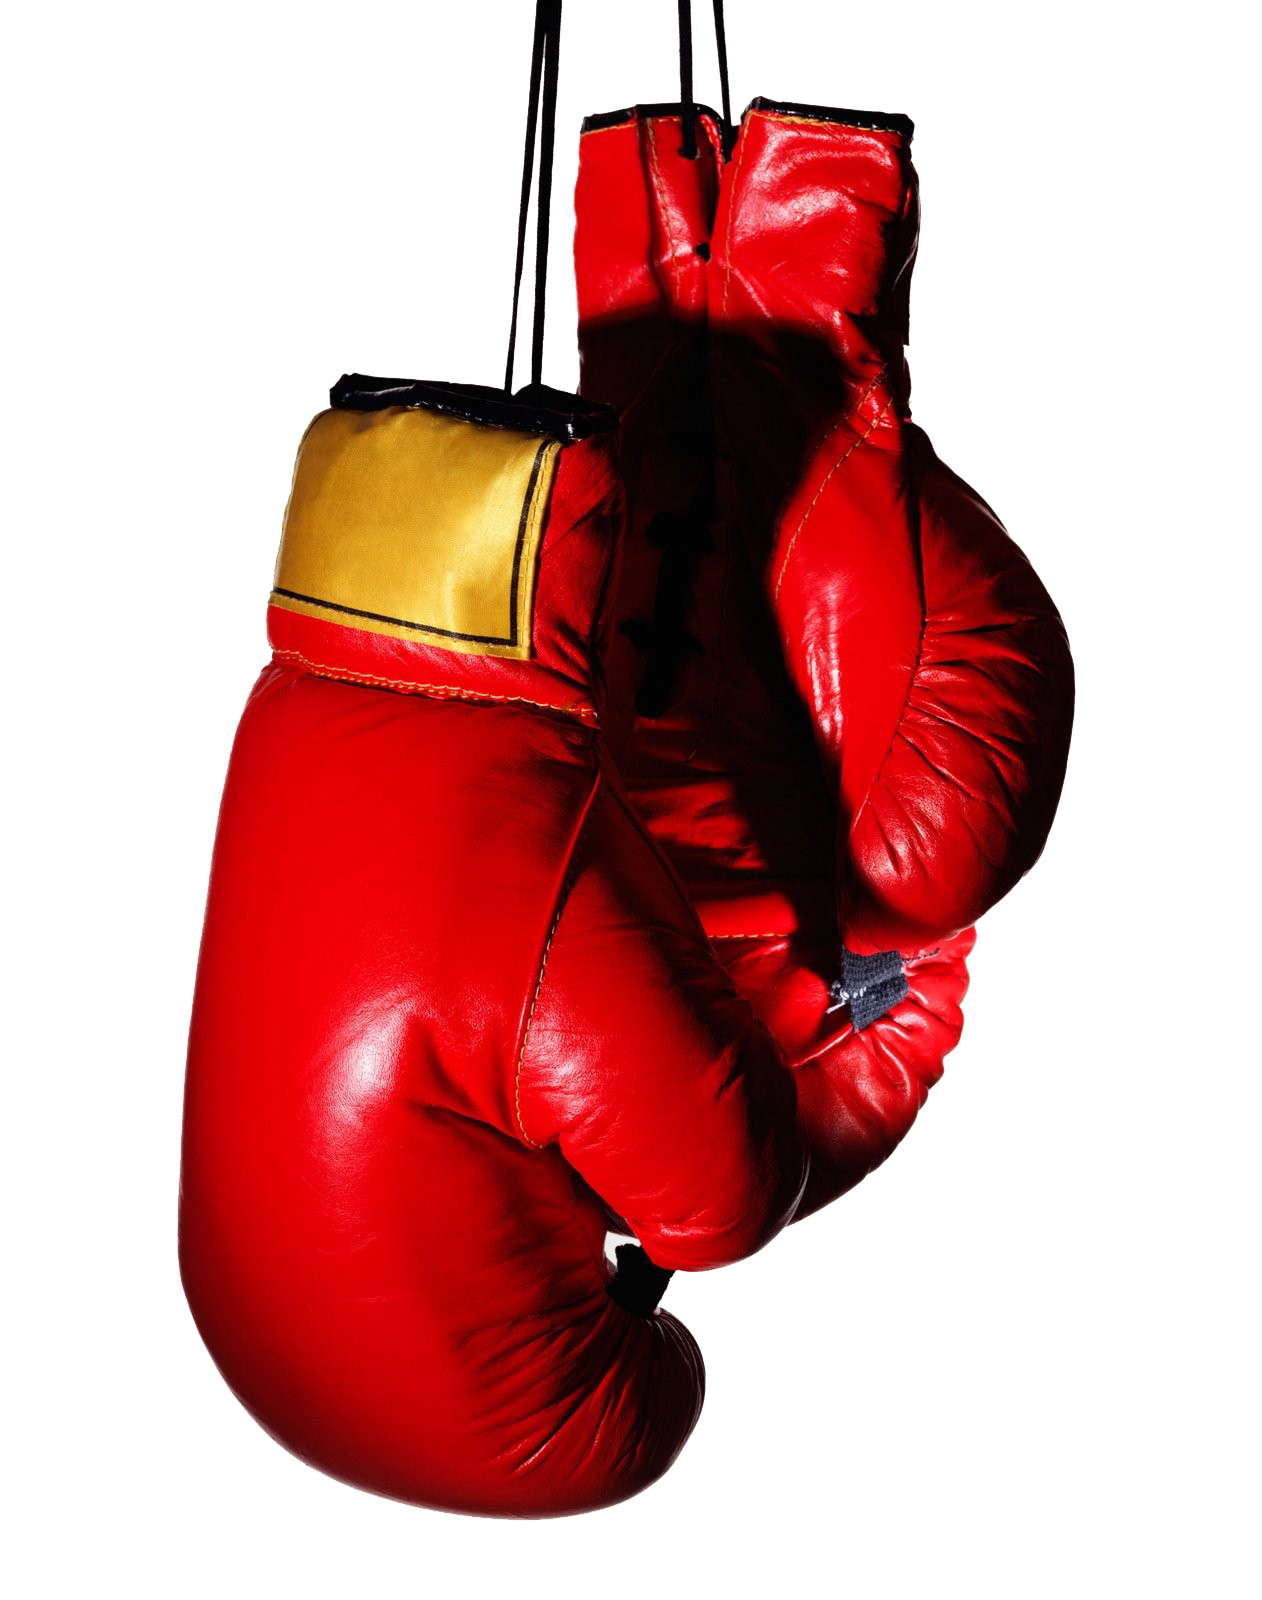 Boxing Gloves Transparent Image PNG Image - Boxing Bell PNG